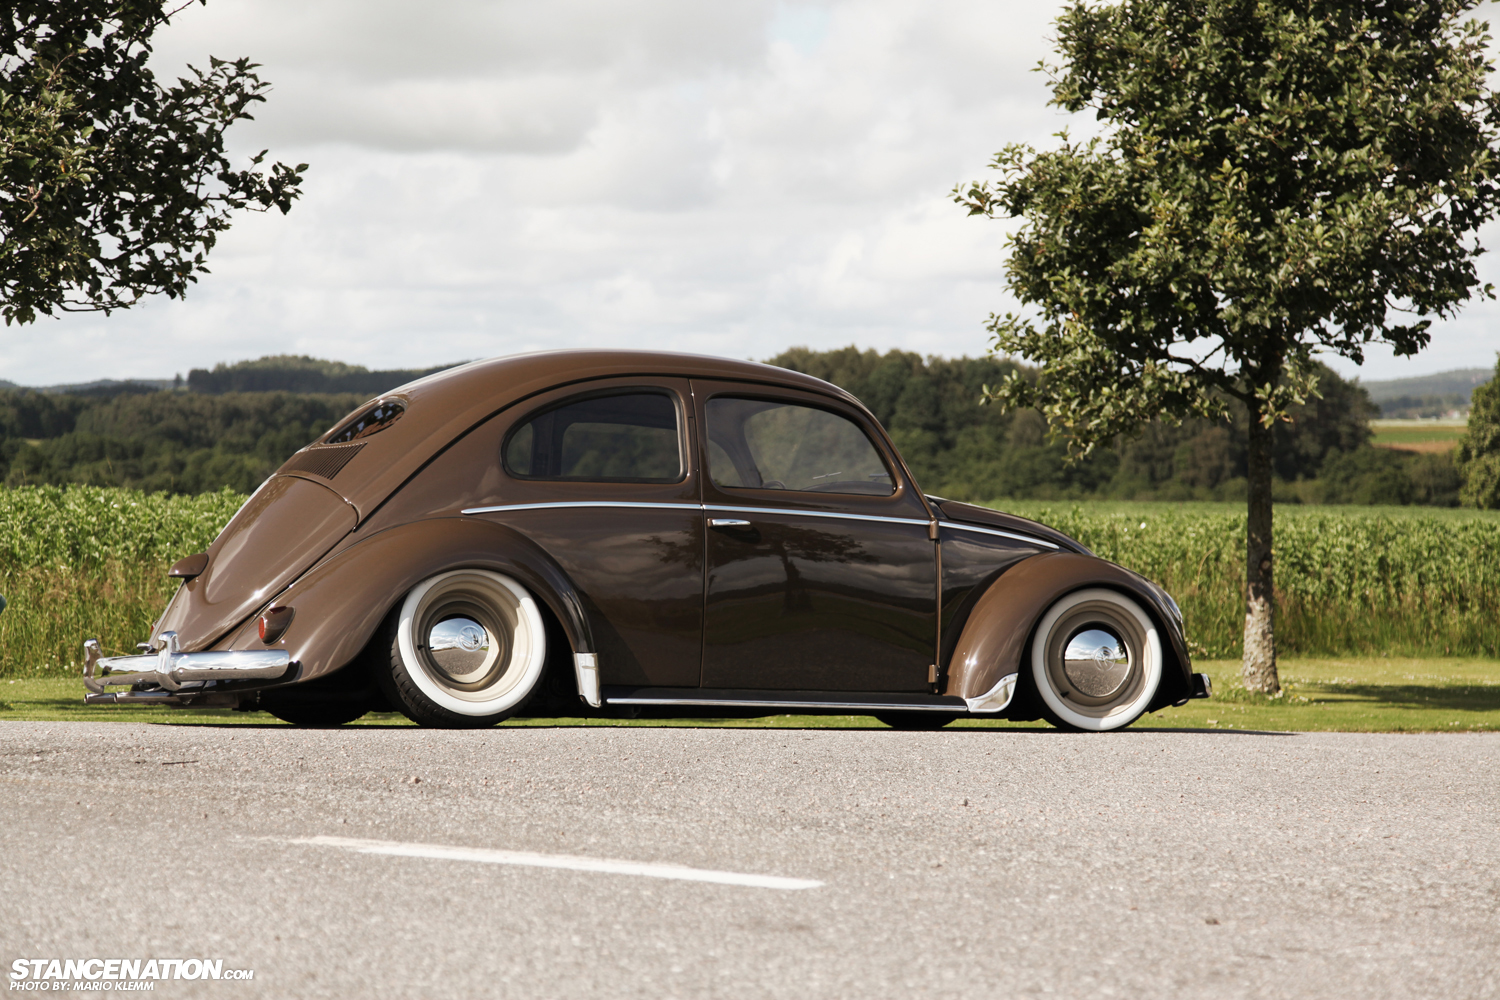 Clean & Cly // Roland's Beautiful VW Beetle. | StanceNation ...